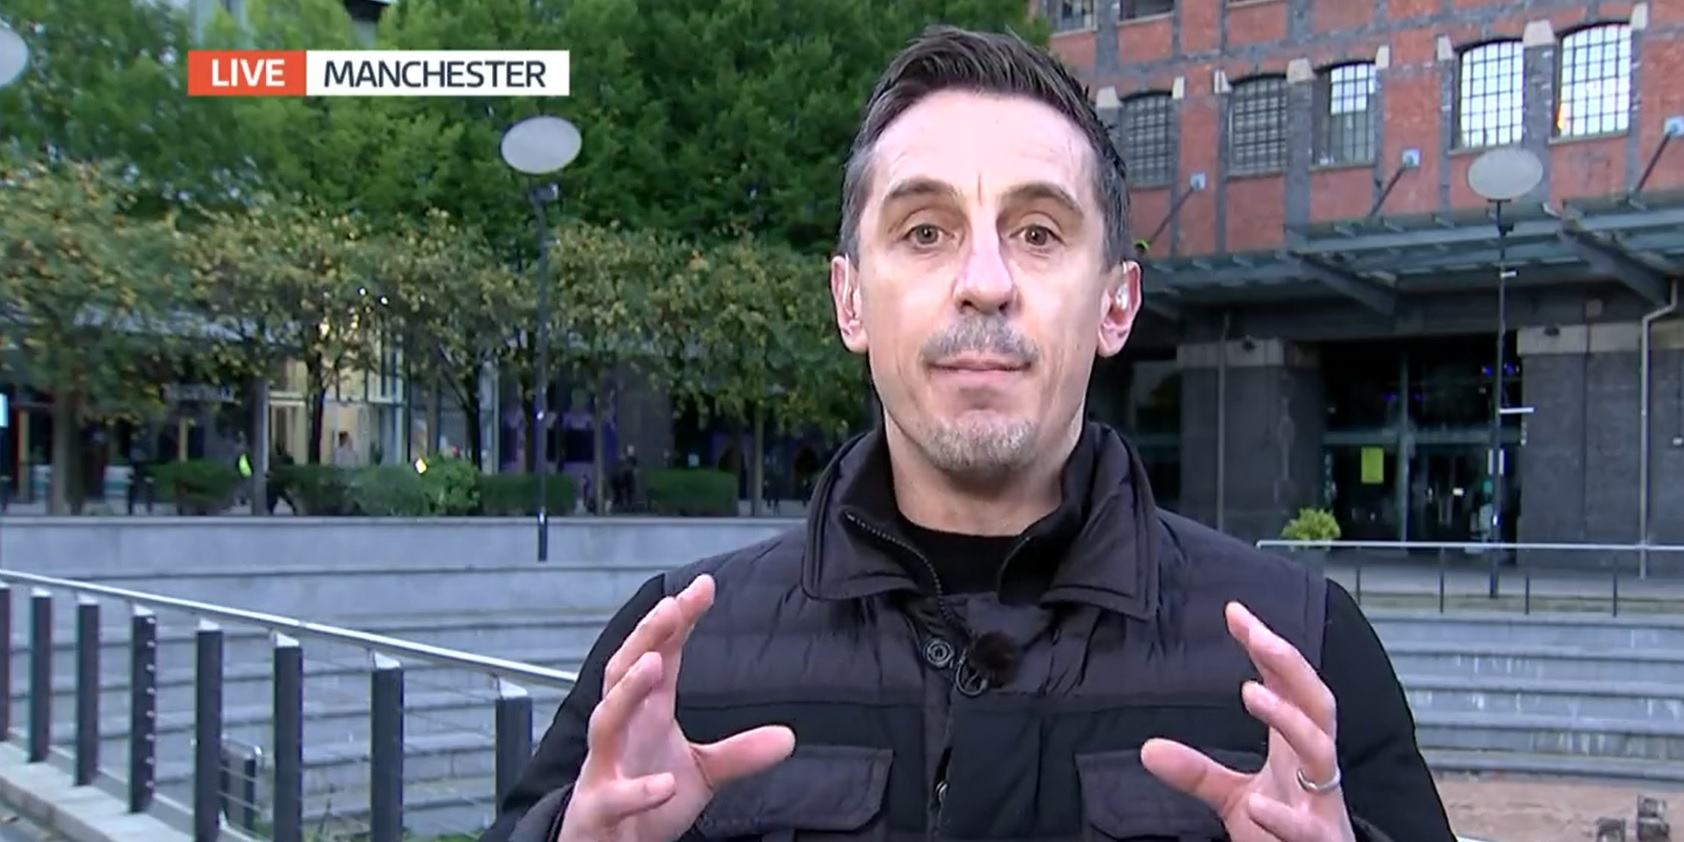 Some Liverpool fans react to Gary Neville ripping into ex-Conservative MP on TV